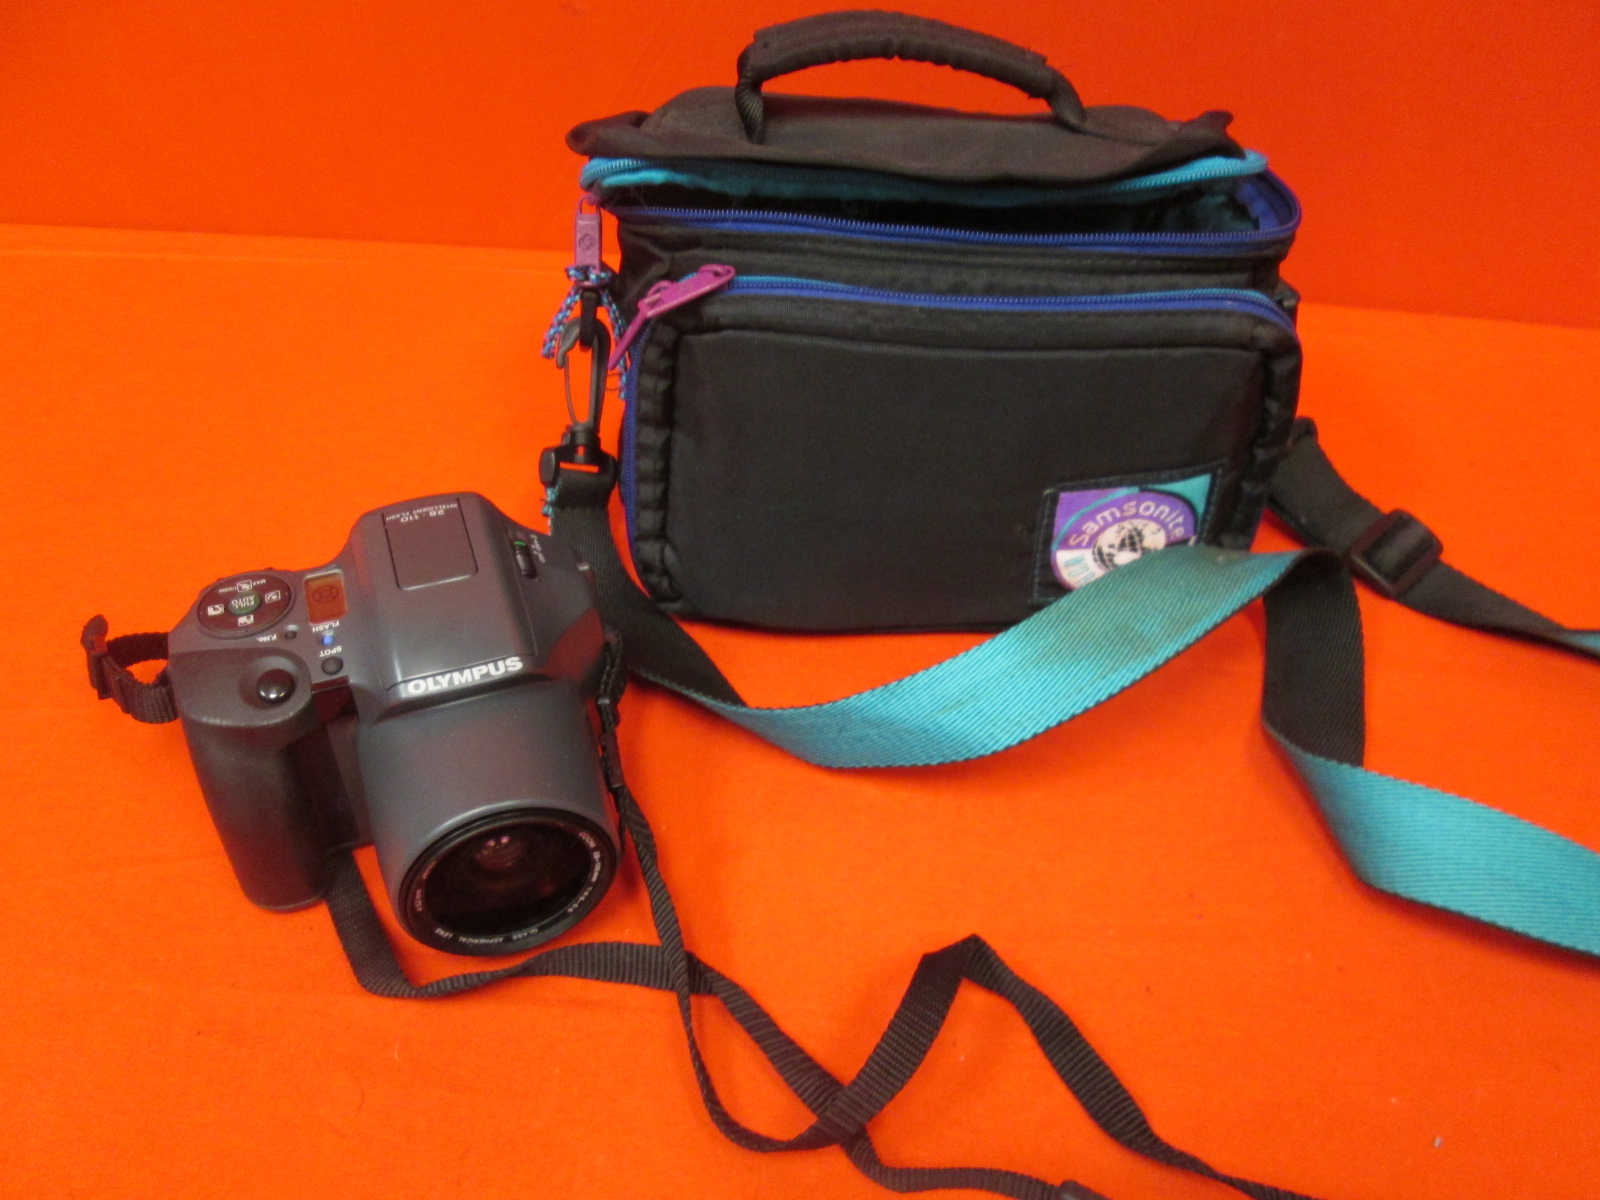 Olympus Is 10 Film Camera With 28-110MM Af Zoom Lens And Travel Case